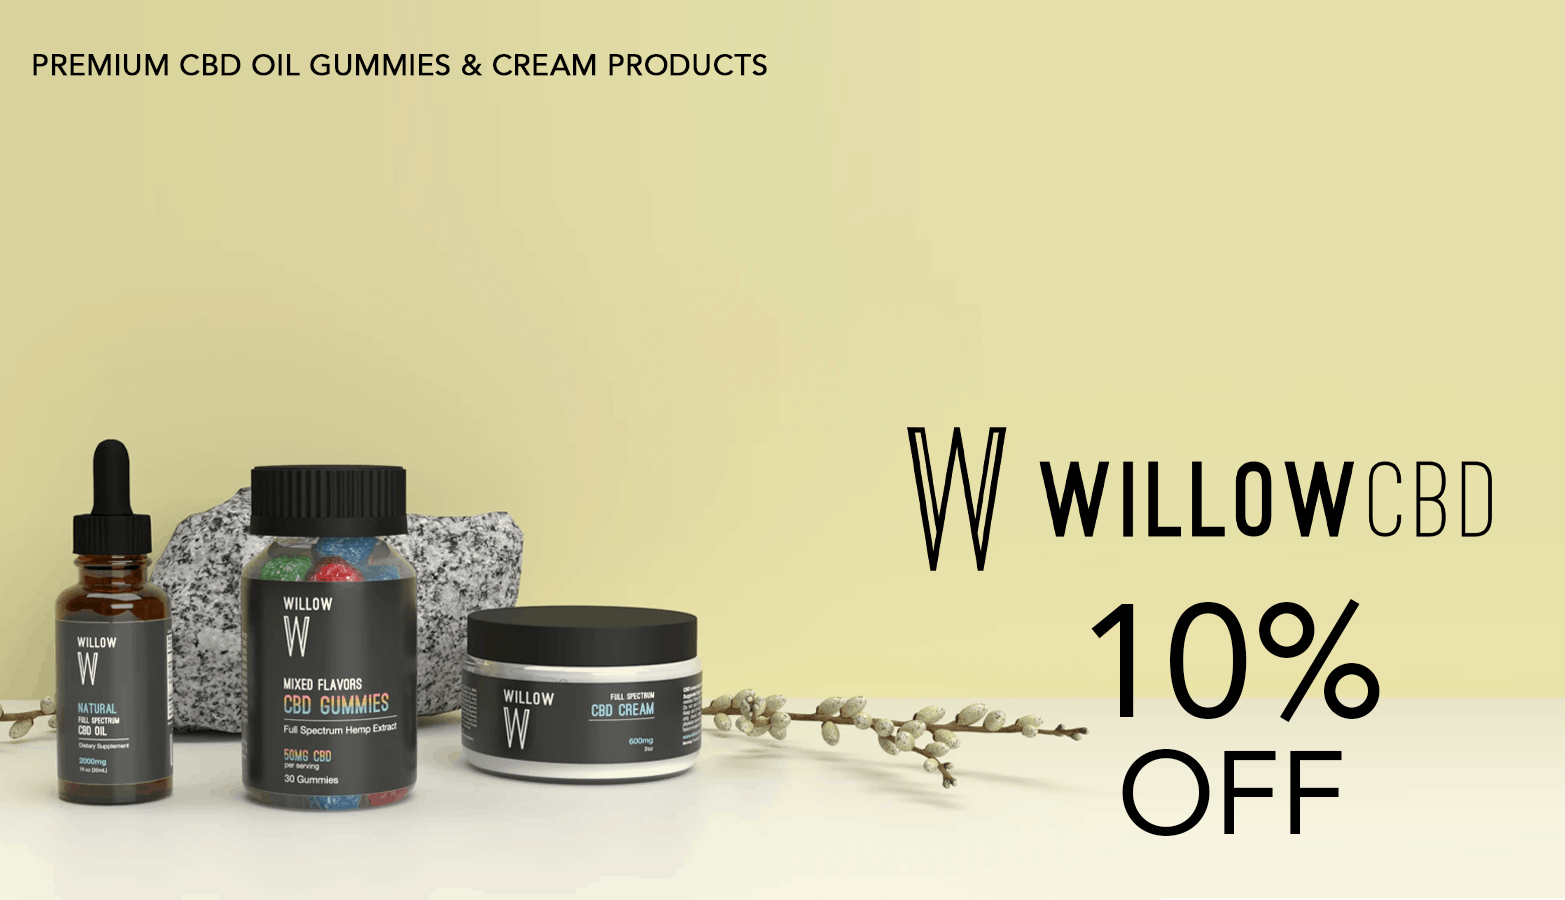 WillowCBD Coupon Code Offer Website